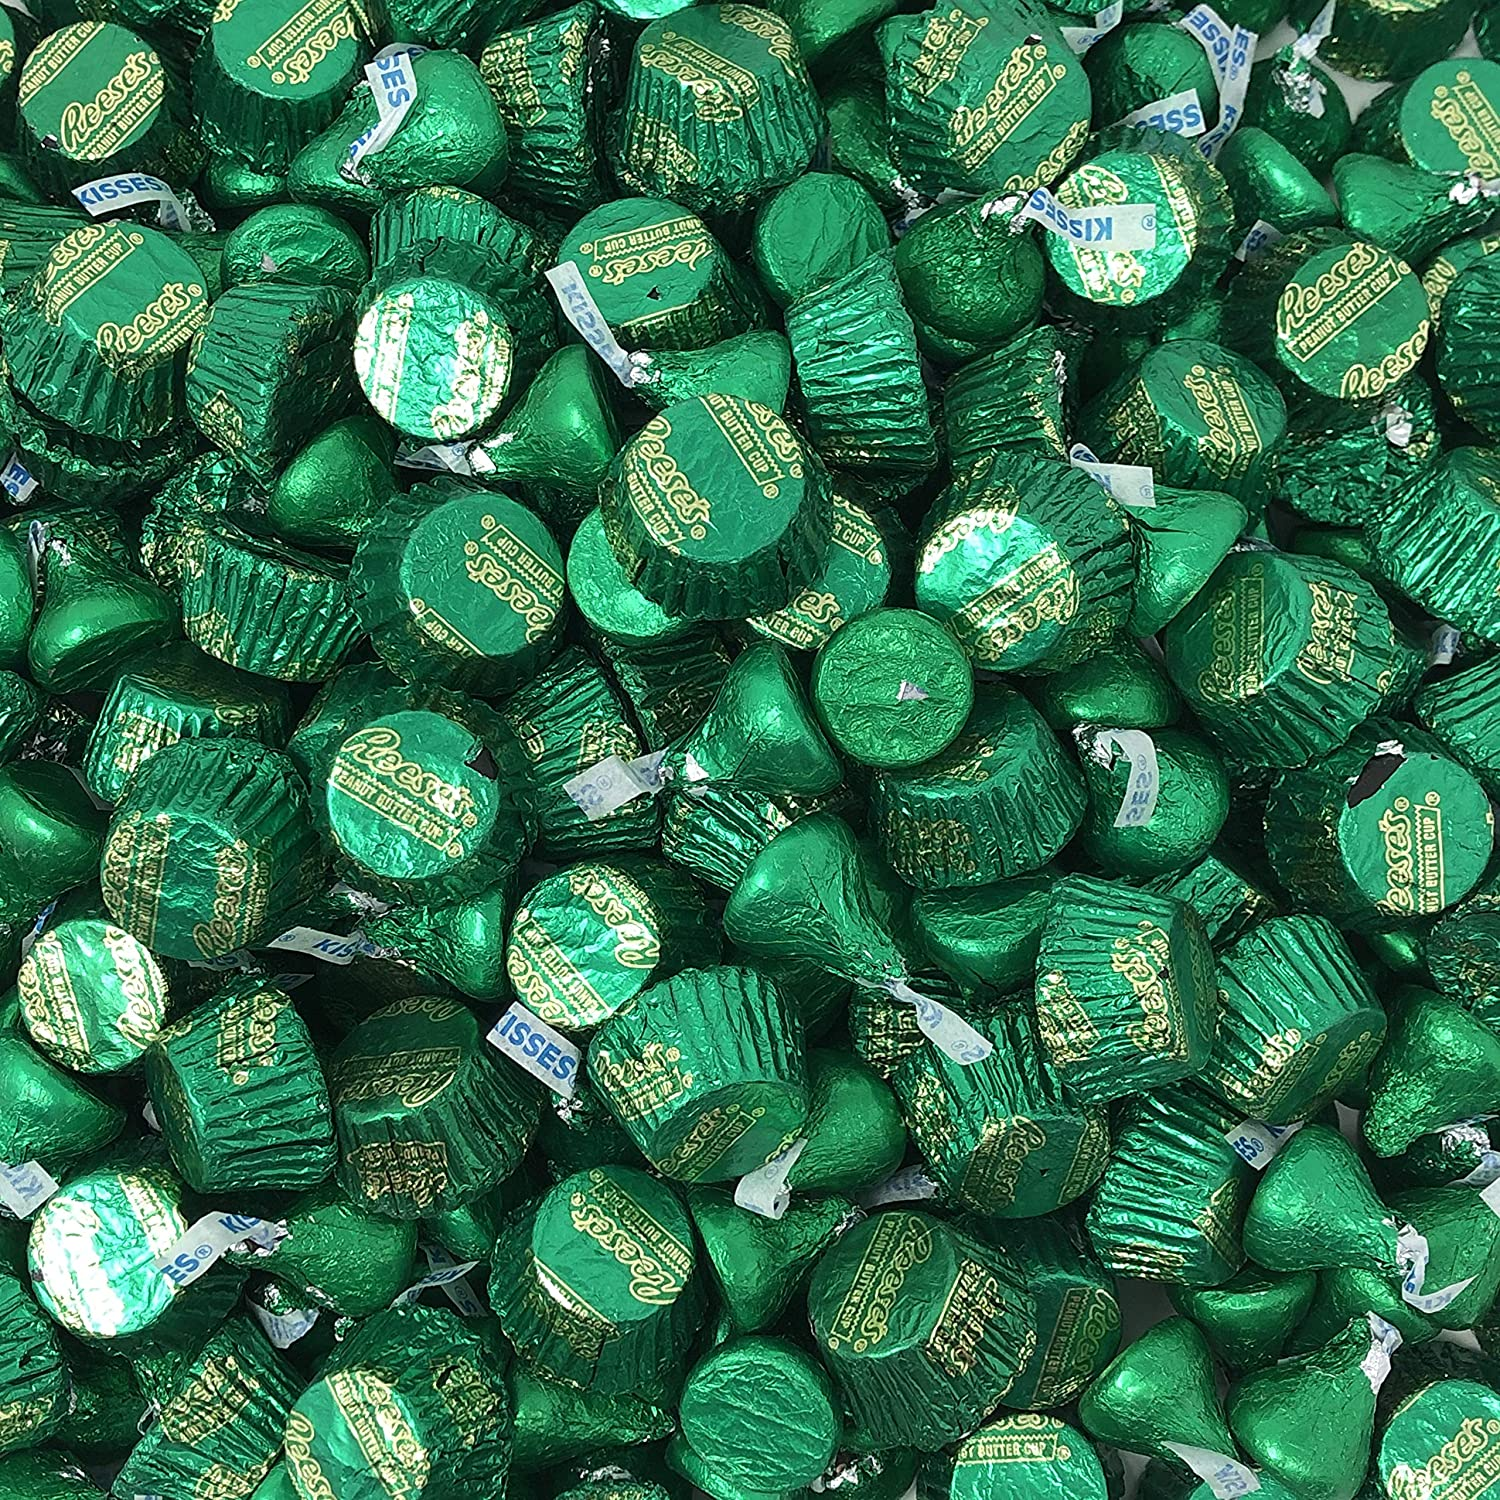 Virginia Beach Mall St. Patrick's Chocolate 55% OFF Candy Kis Hershey's Includes Assortment